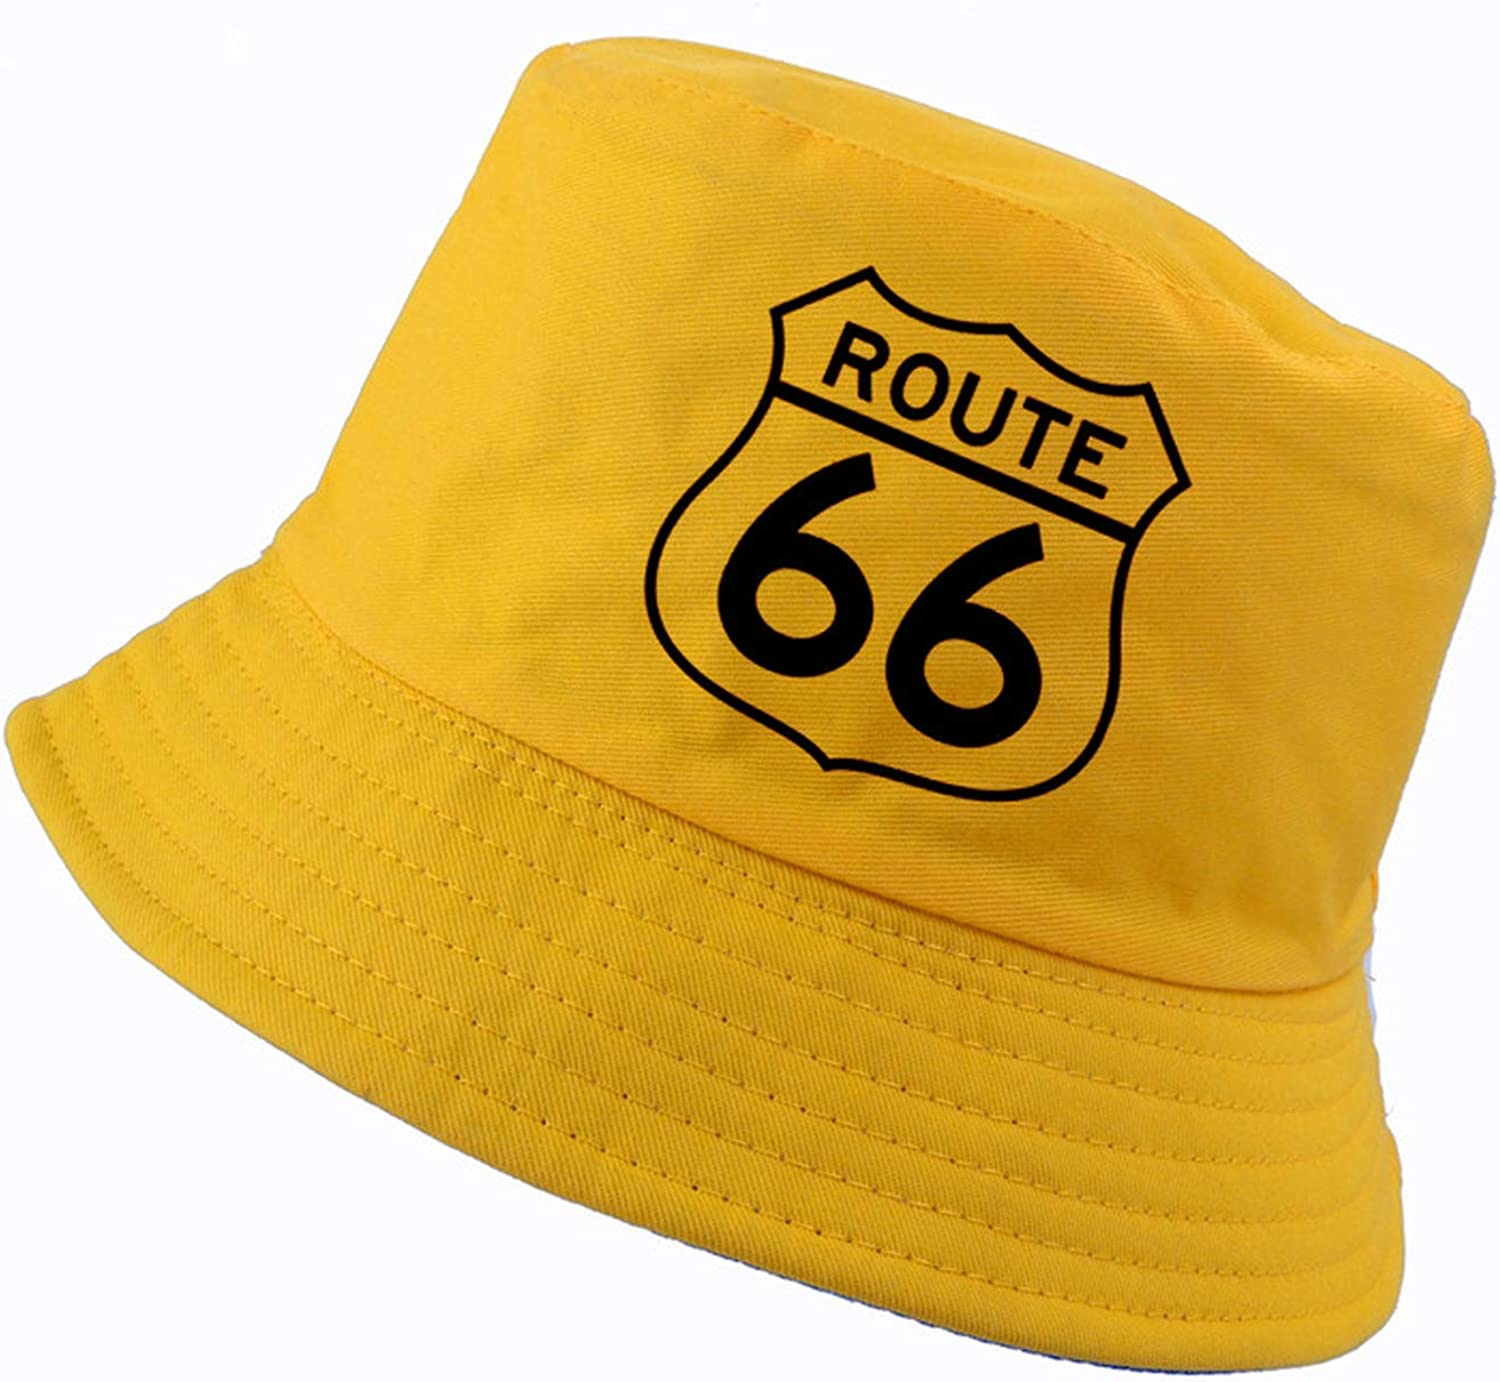 Fashion Route 66 Bucket hat Men and Women Summer k pop Fisherman hat Outdoor Sports dad Cap Panama Fishing Cap